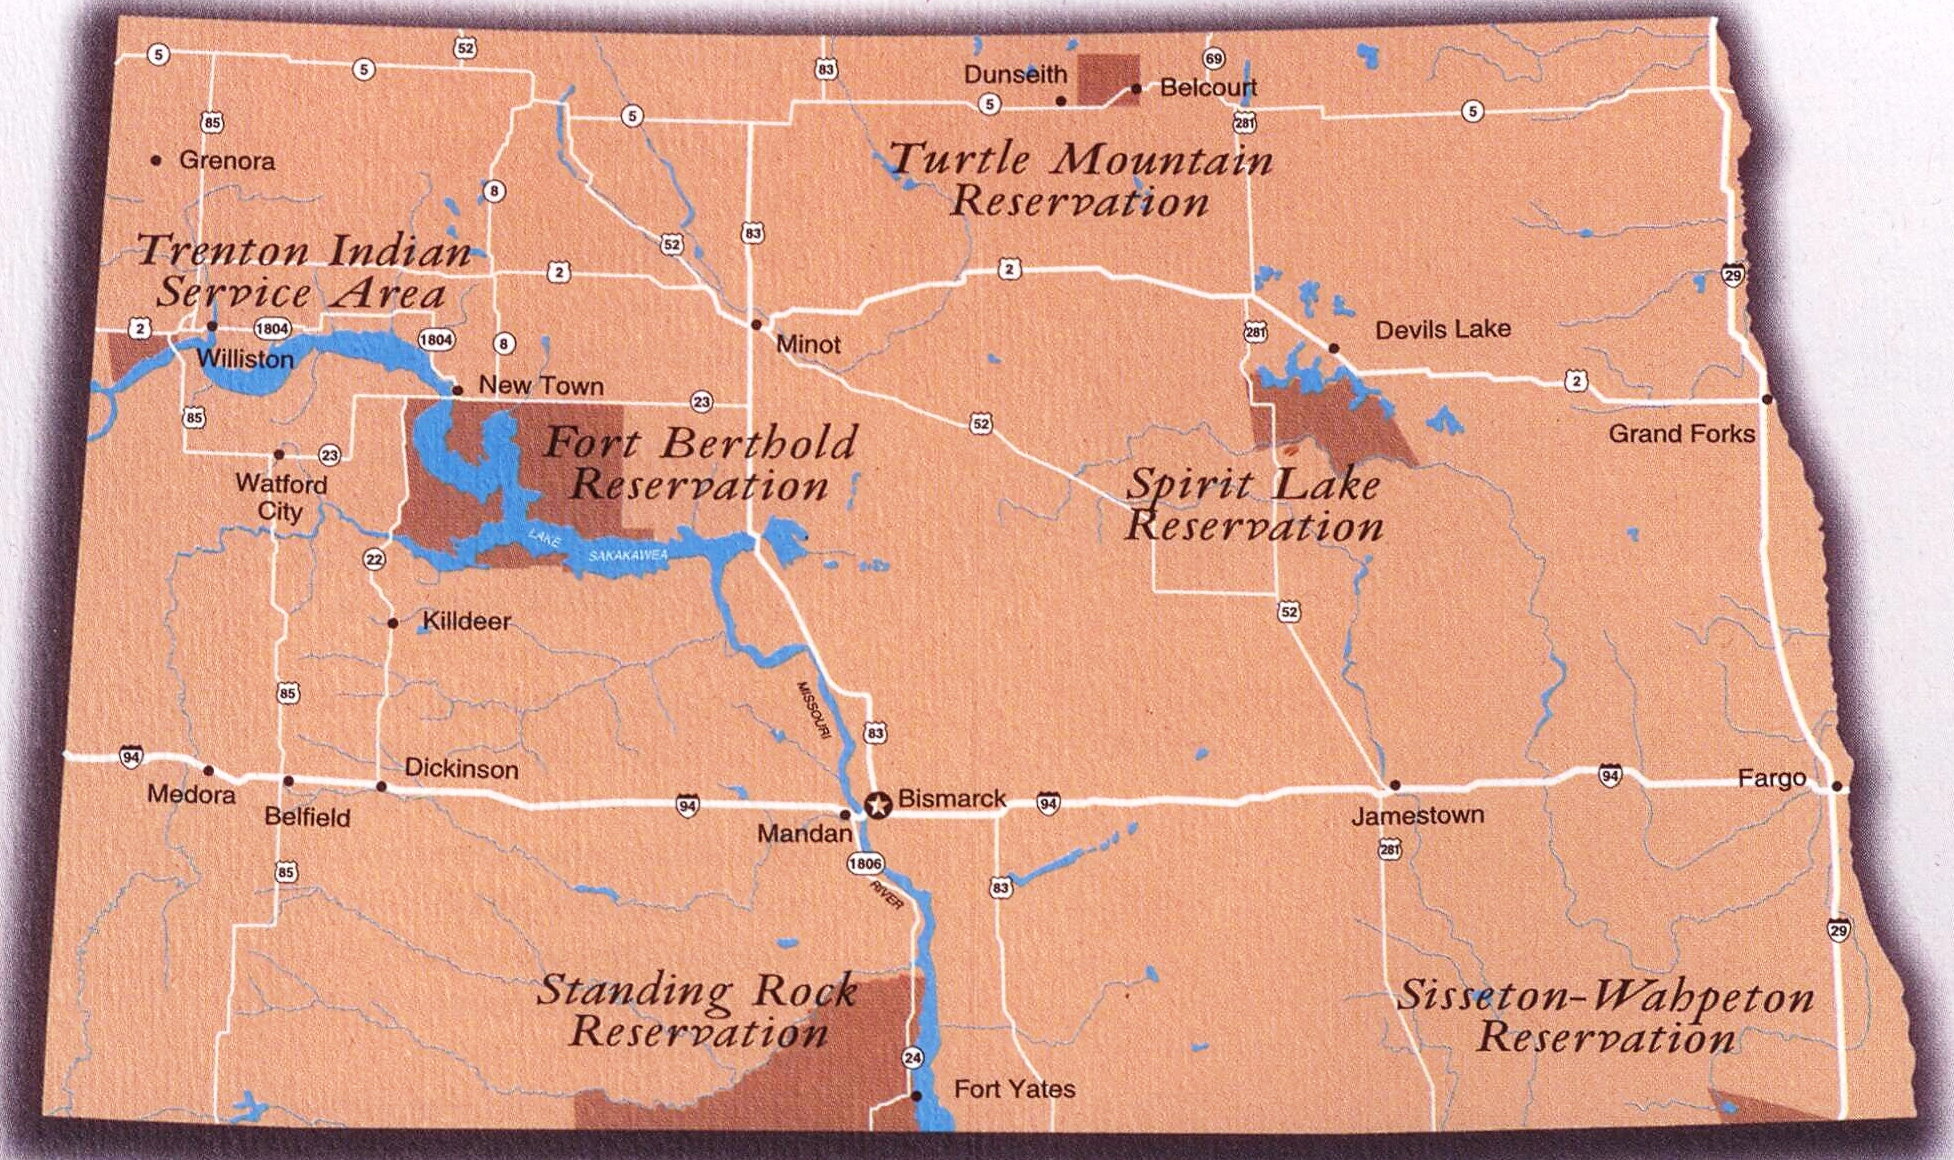 badlands nd map with The Bad Lands Of North Dakota on The Bad Lands Of North Dakota as well LocationPhotoDirectLink G60973 I28086638 Medora North Dakota in addition H66D7E73 together with File Wisconsin in United States also Establishment Great Sioux Reservation.